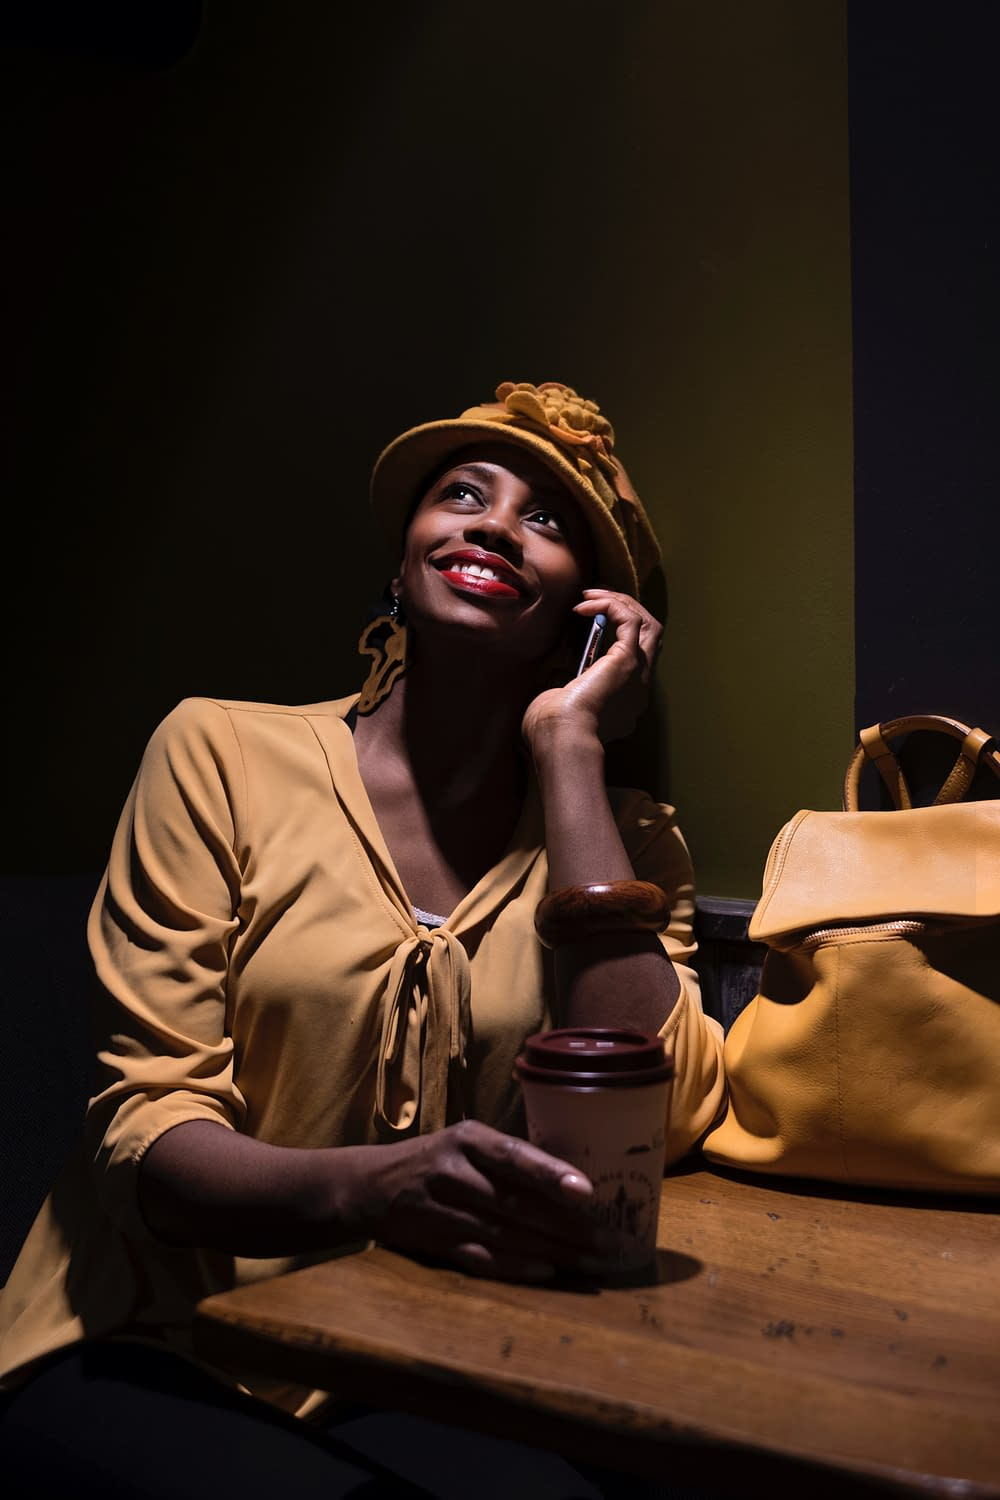 woman in yellow,handbag,hat, sitting in a coffee shop,smiling